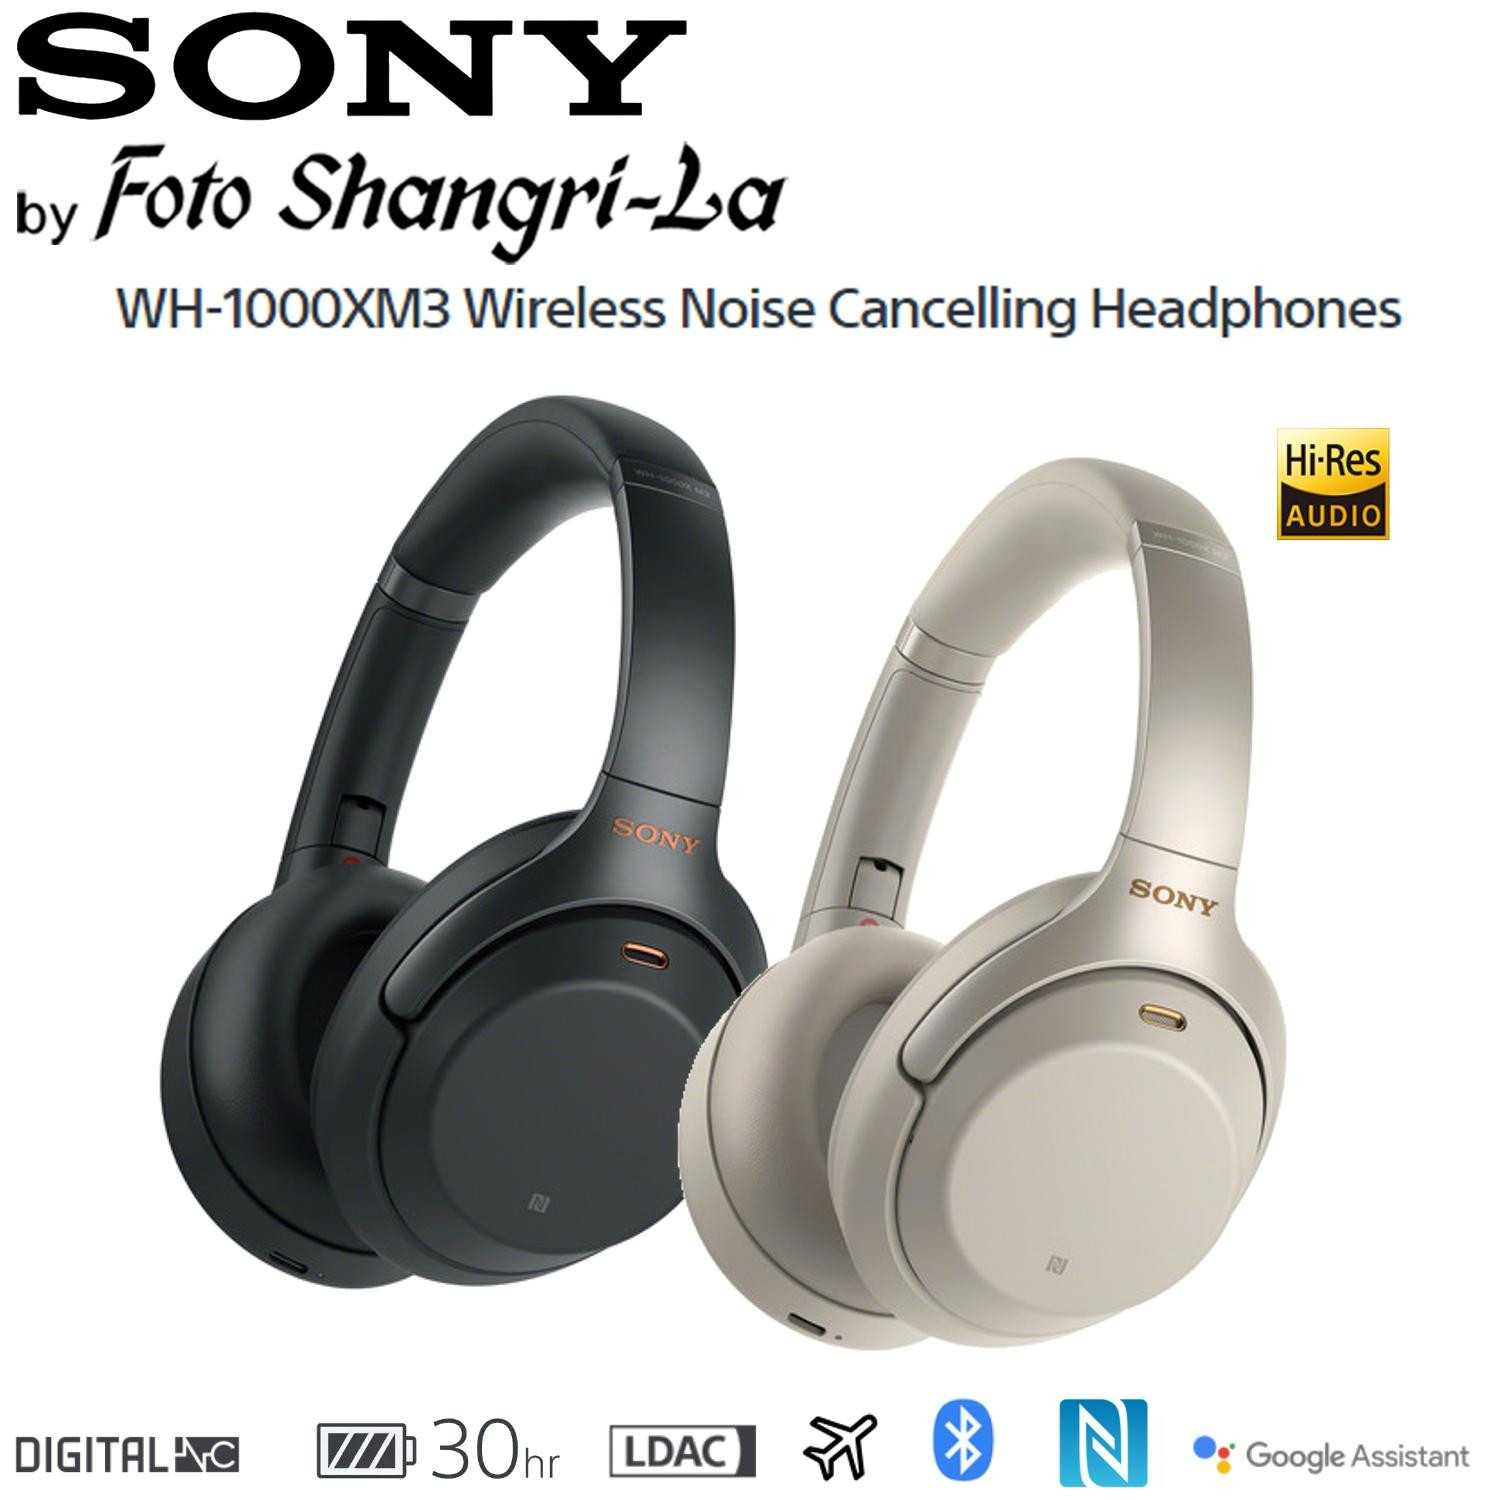 Sony WH-1000XM3 Wireless Noise Cancelling Headphones Over Ear Headsets